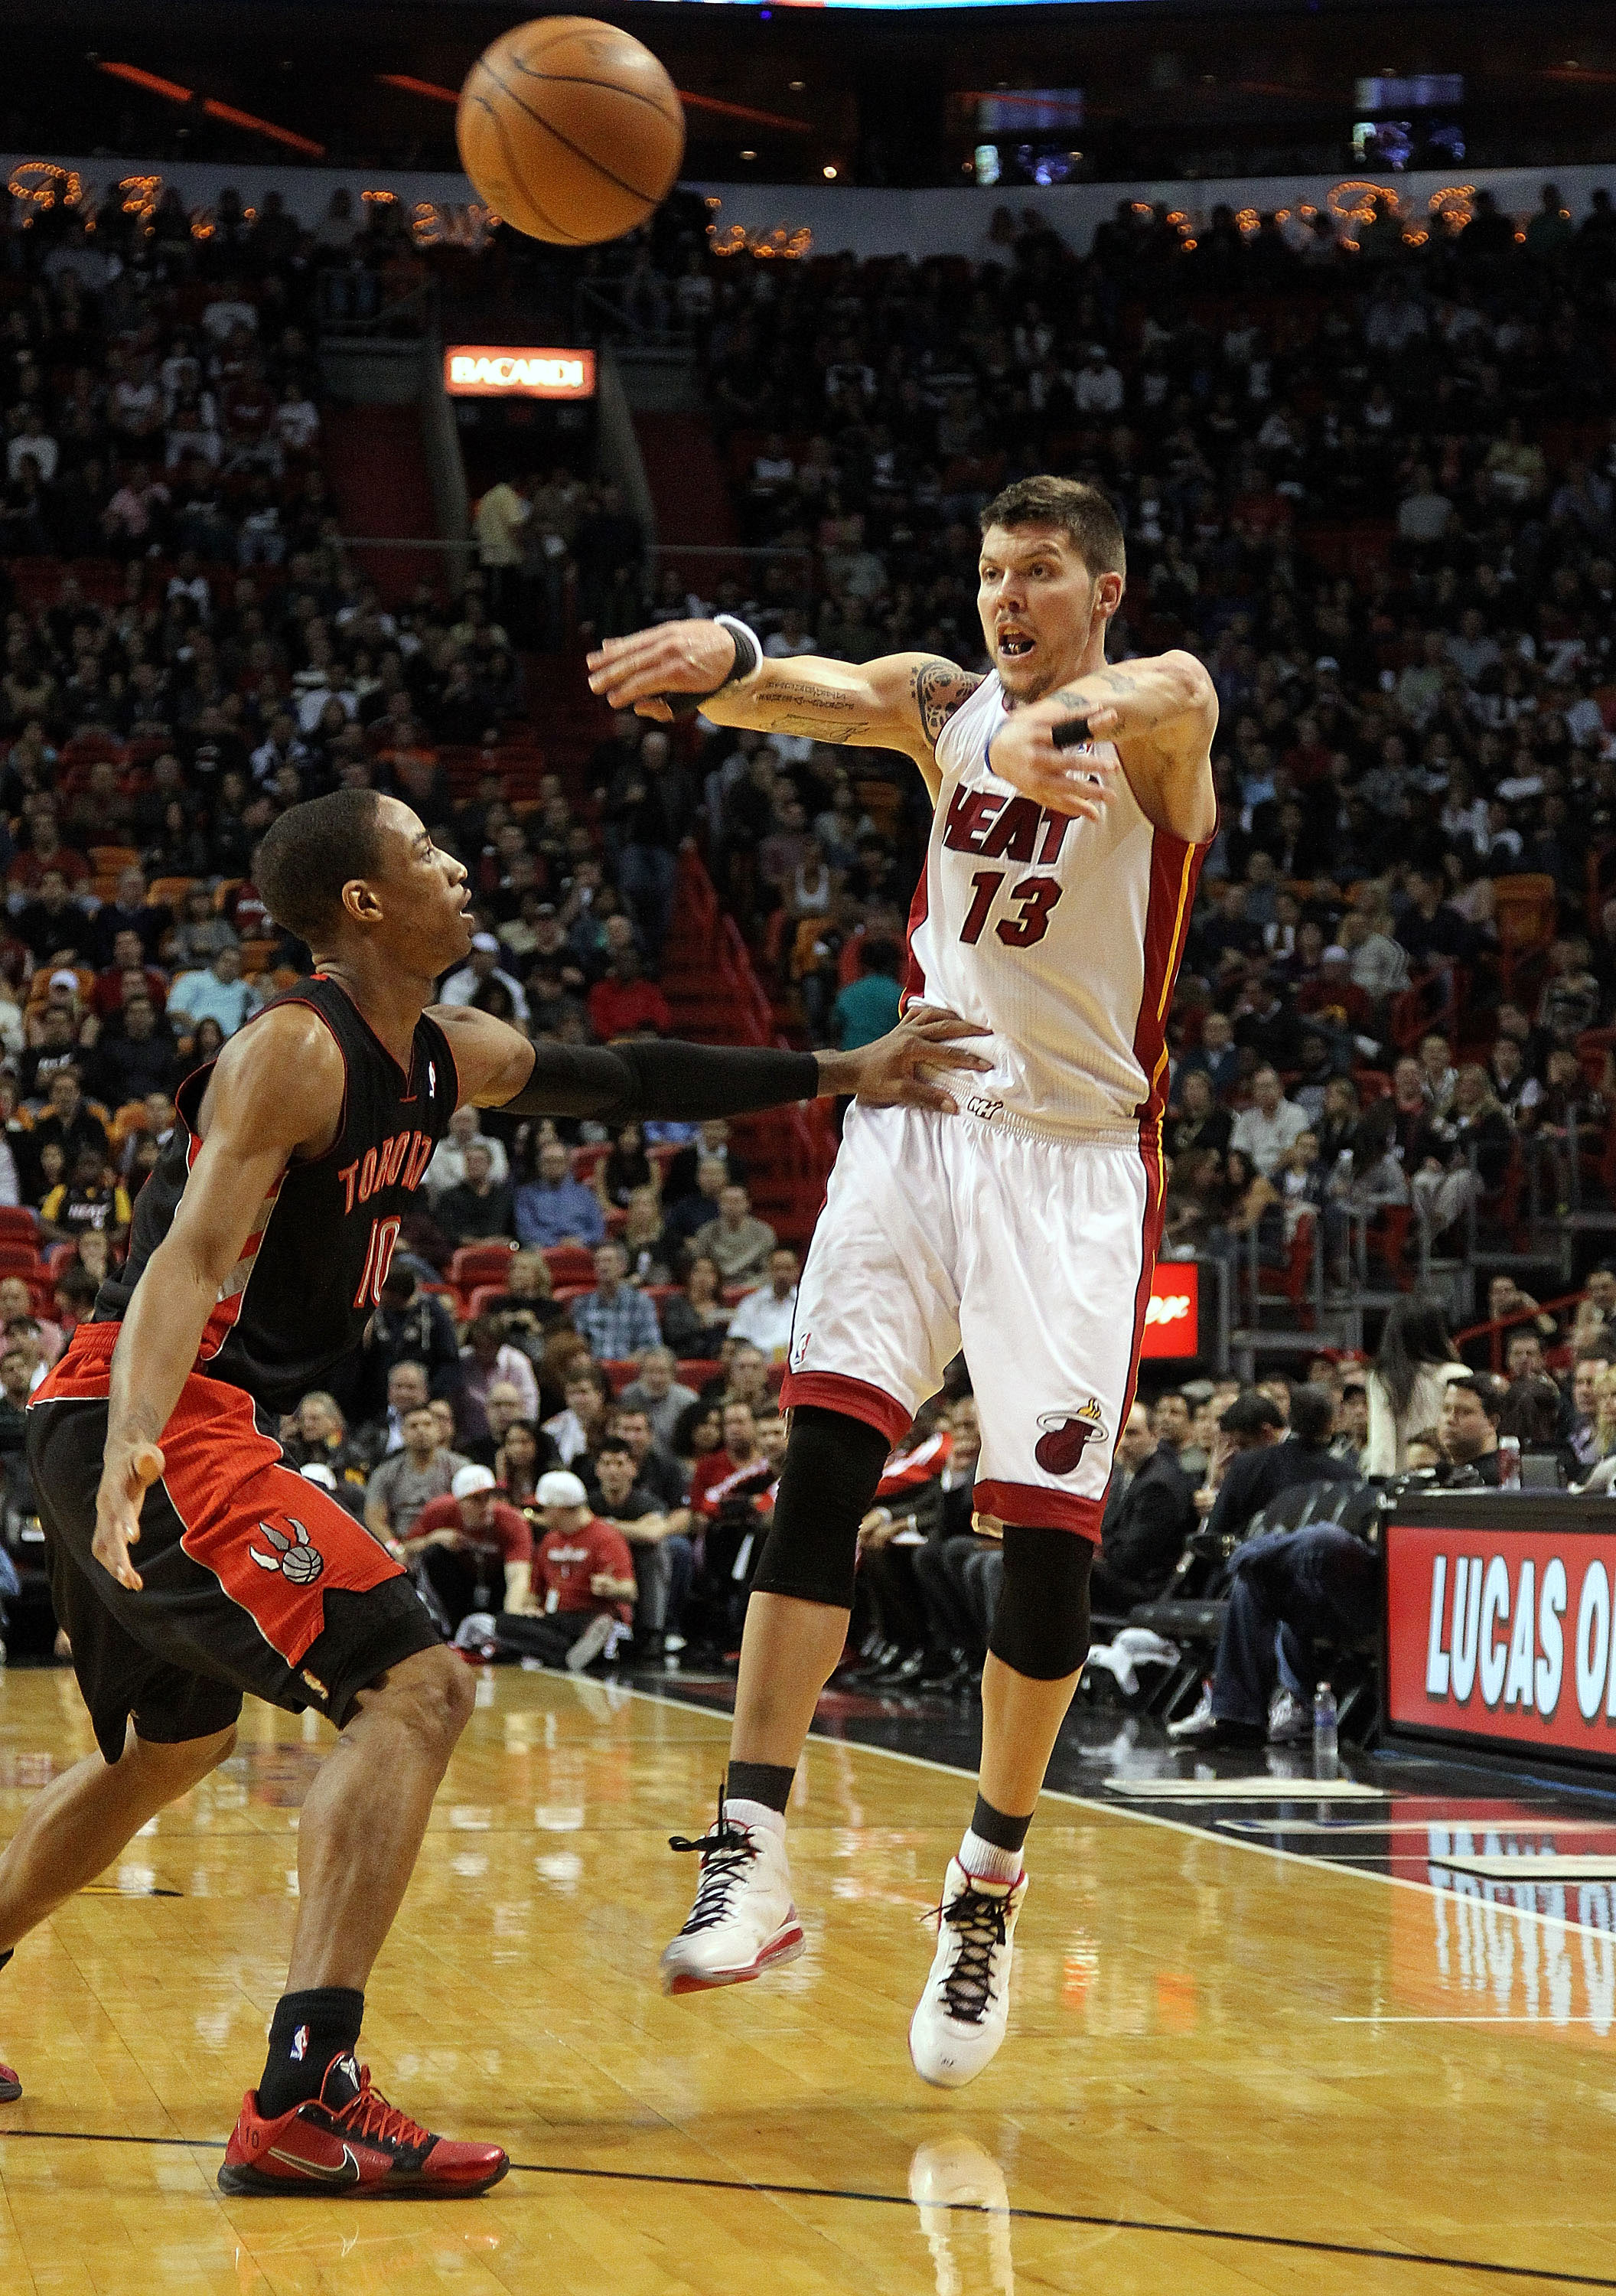 MIAMI, FL - JANUARY 22:  Mike Miller #13 of the Miami Heat spasses the ball during a game against the Toronto Raptors at American Airlines Arena on January 22, 2011 in Miami, Florida. NOTE TO USER: User expressly acknowledges and agrees that, by downloadi